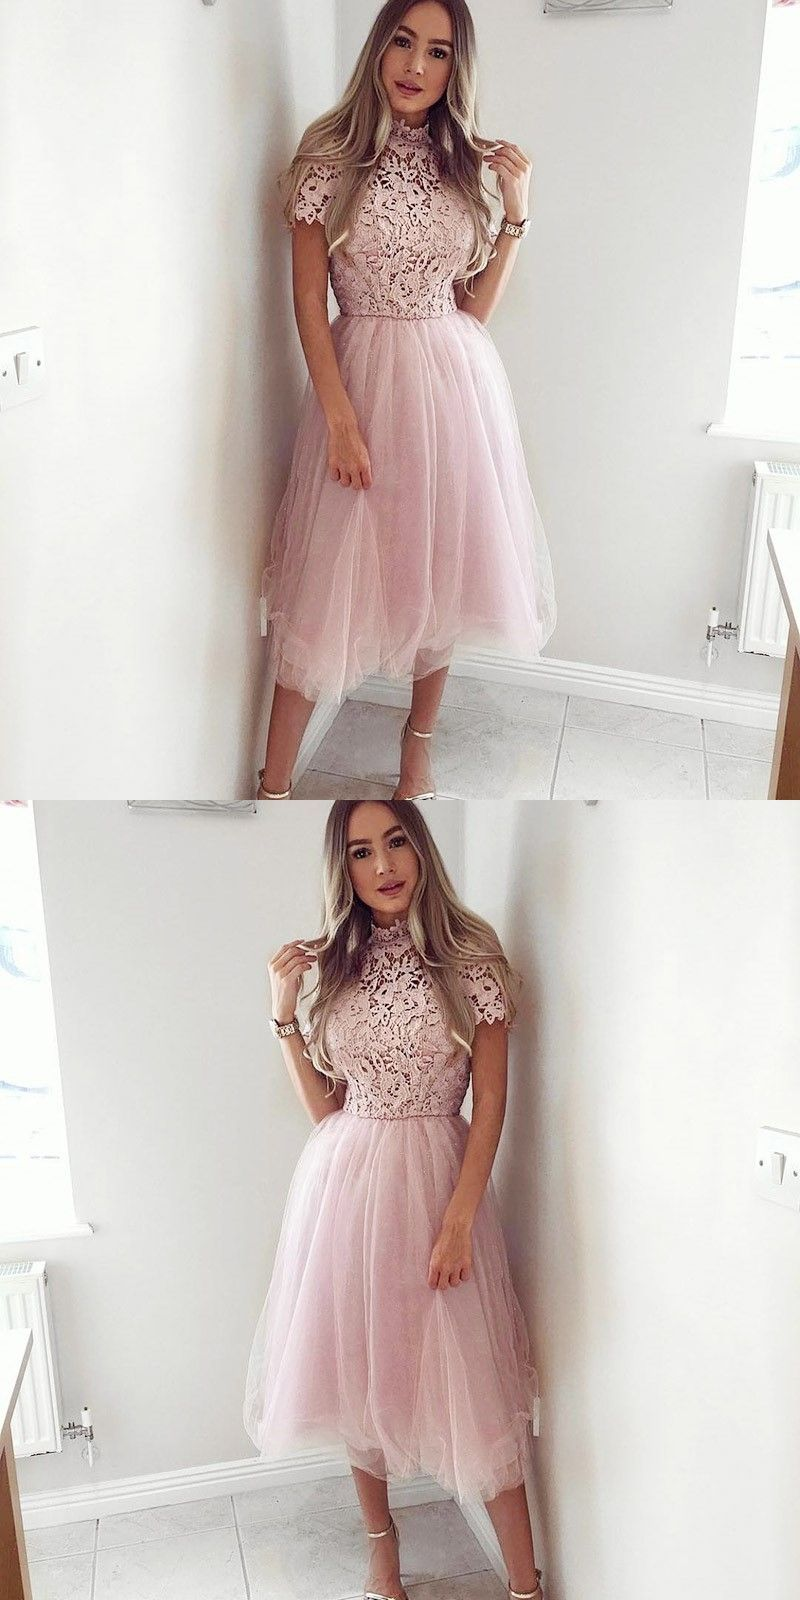 Pink dress hoco  ALine Jewel MidCalf Pink Homecoming Dress with Lace  Homecoming